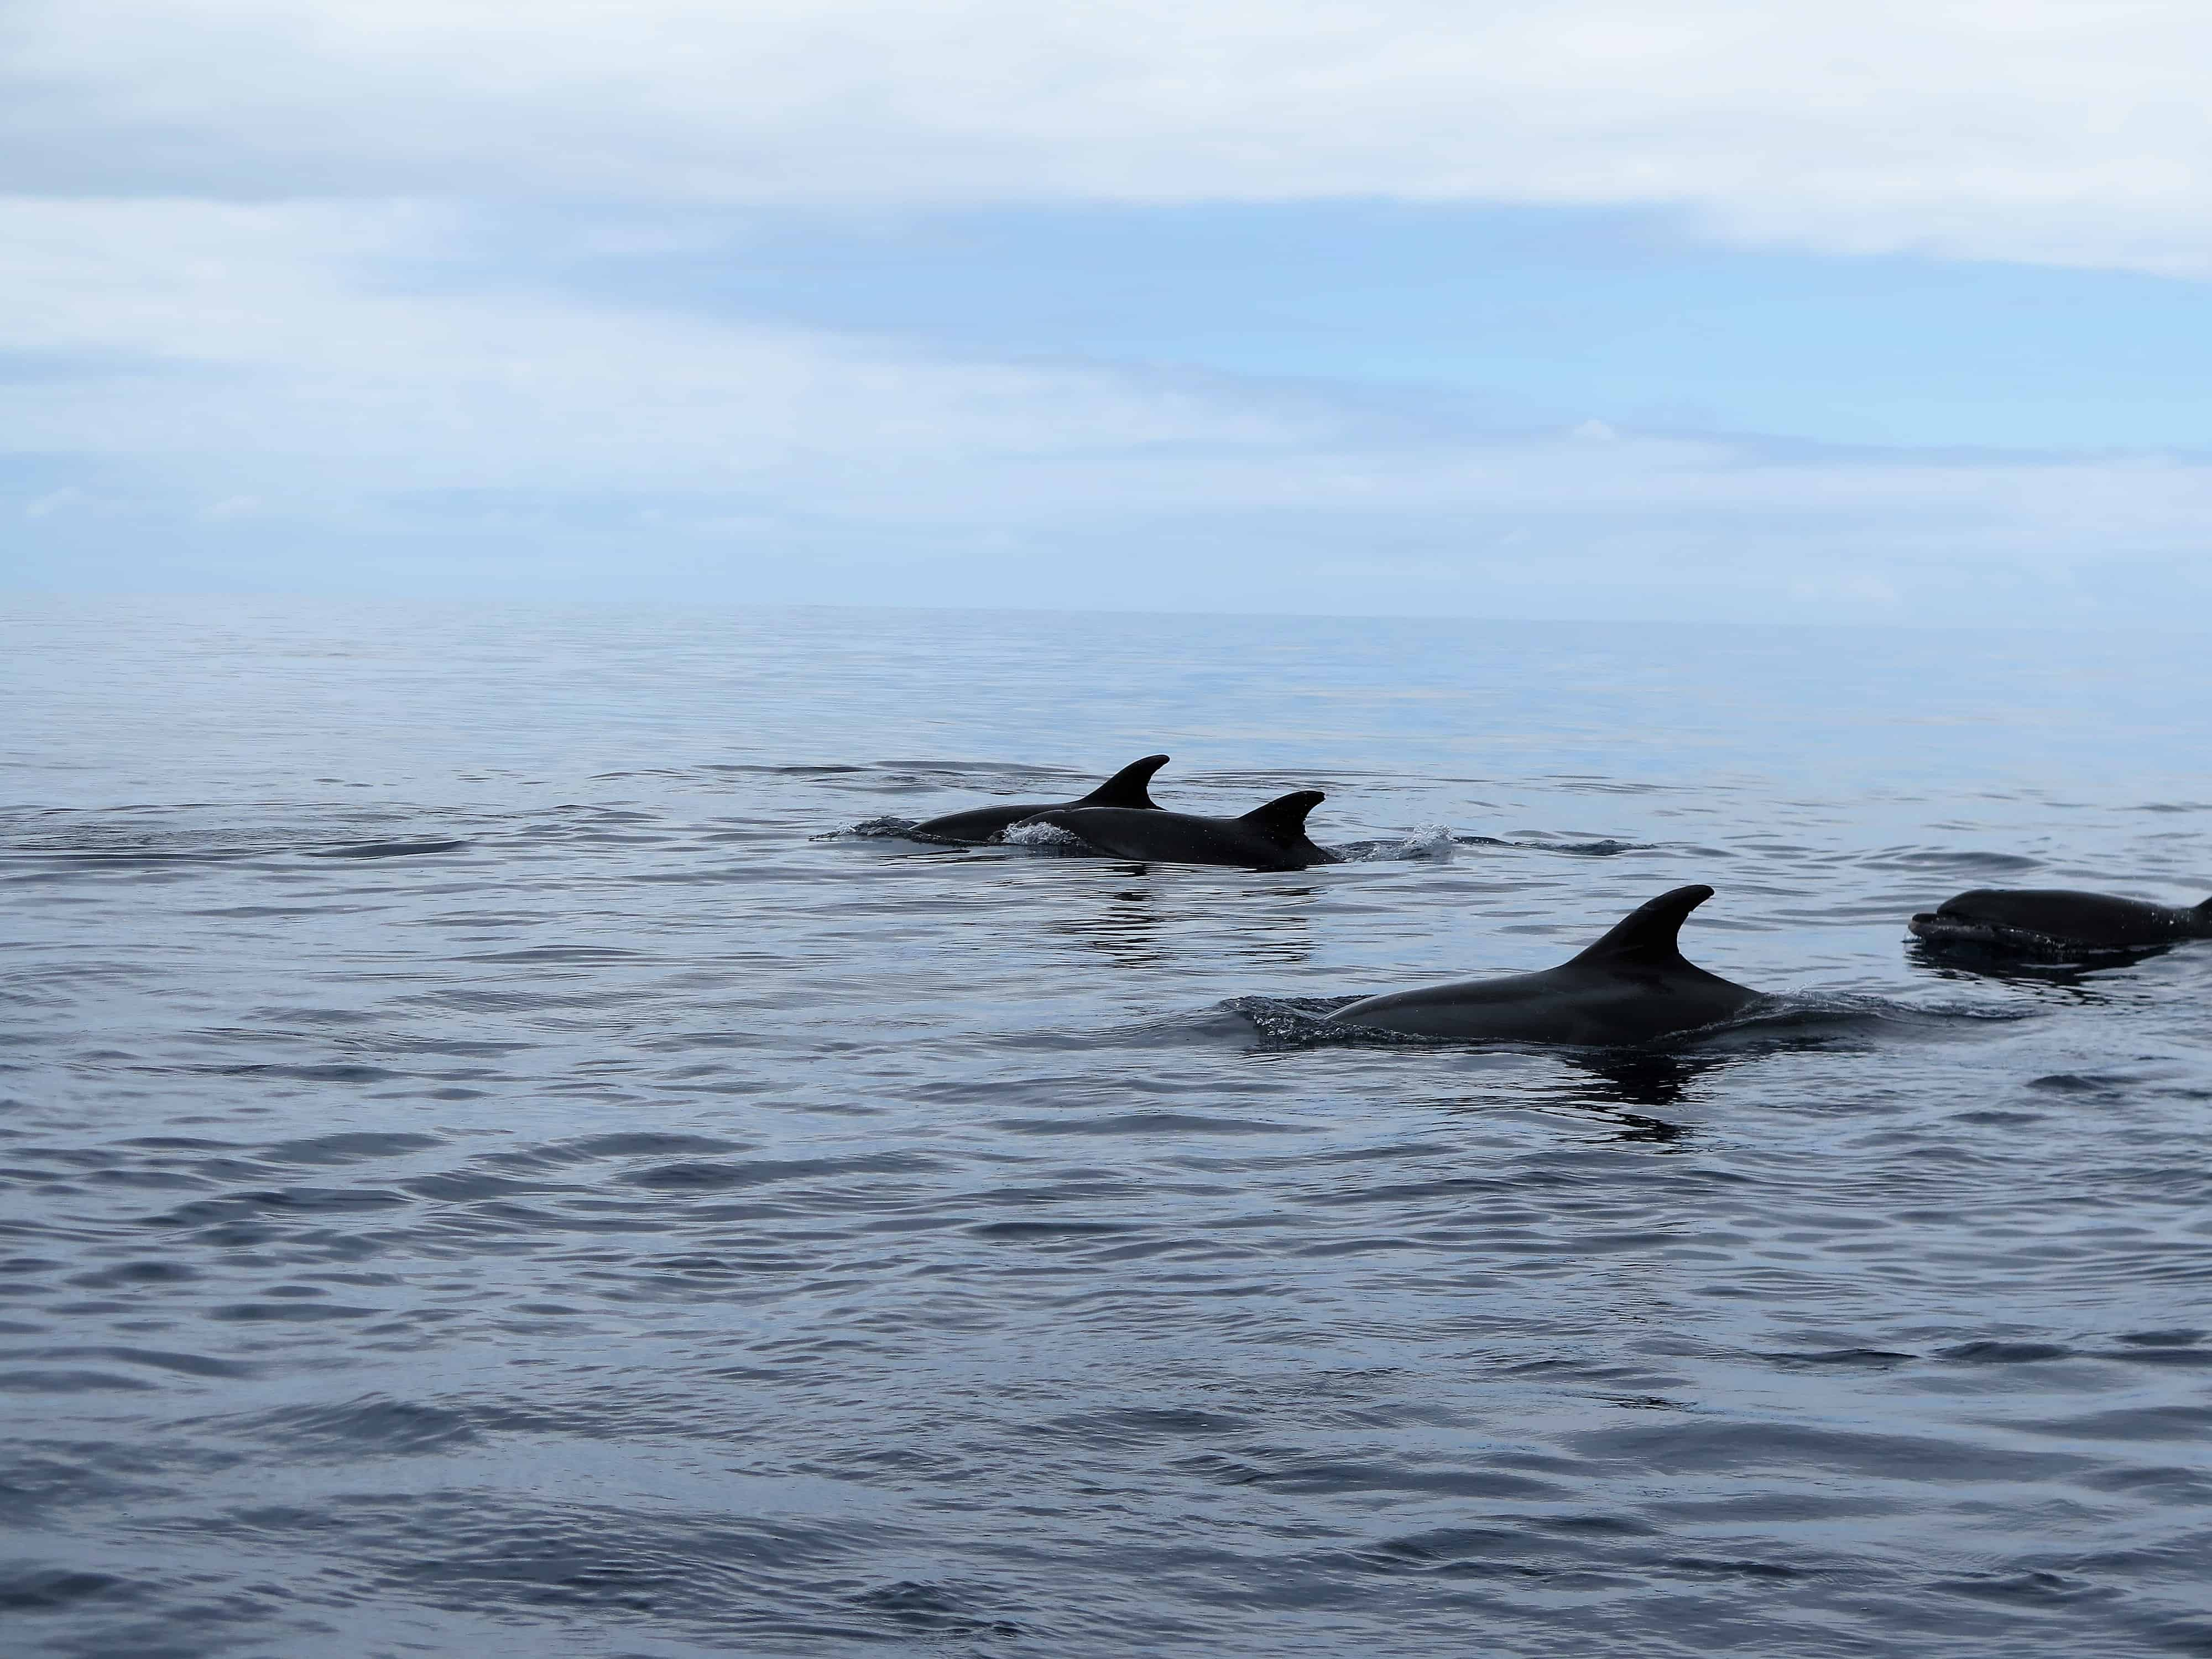 Diving madeira Snorkeling whales dolphins Kayak - img_1070